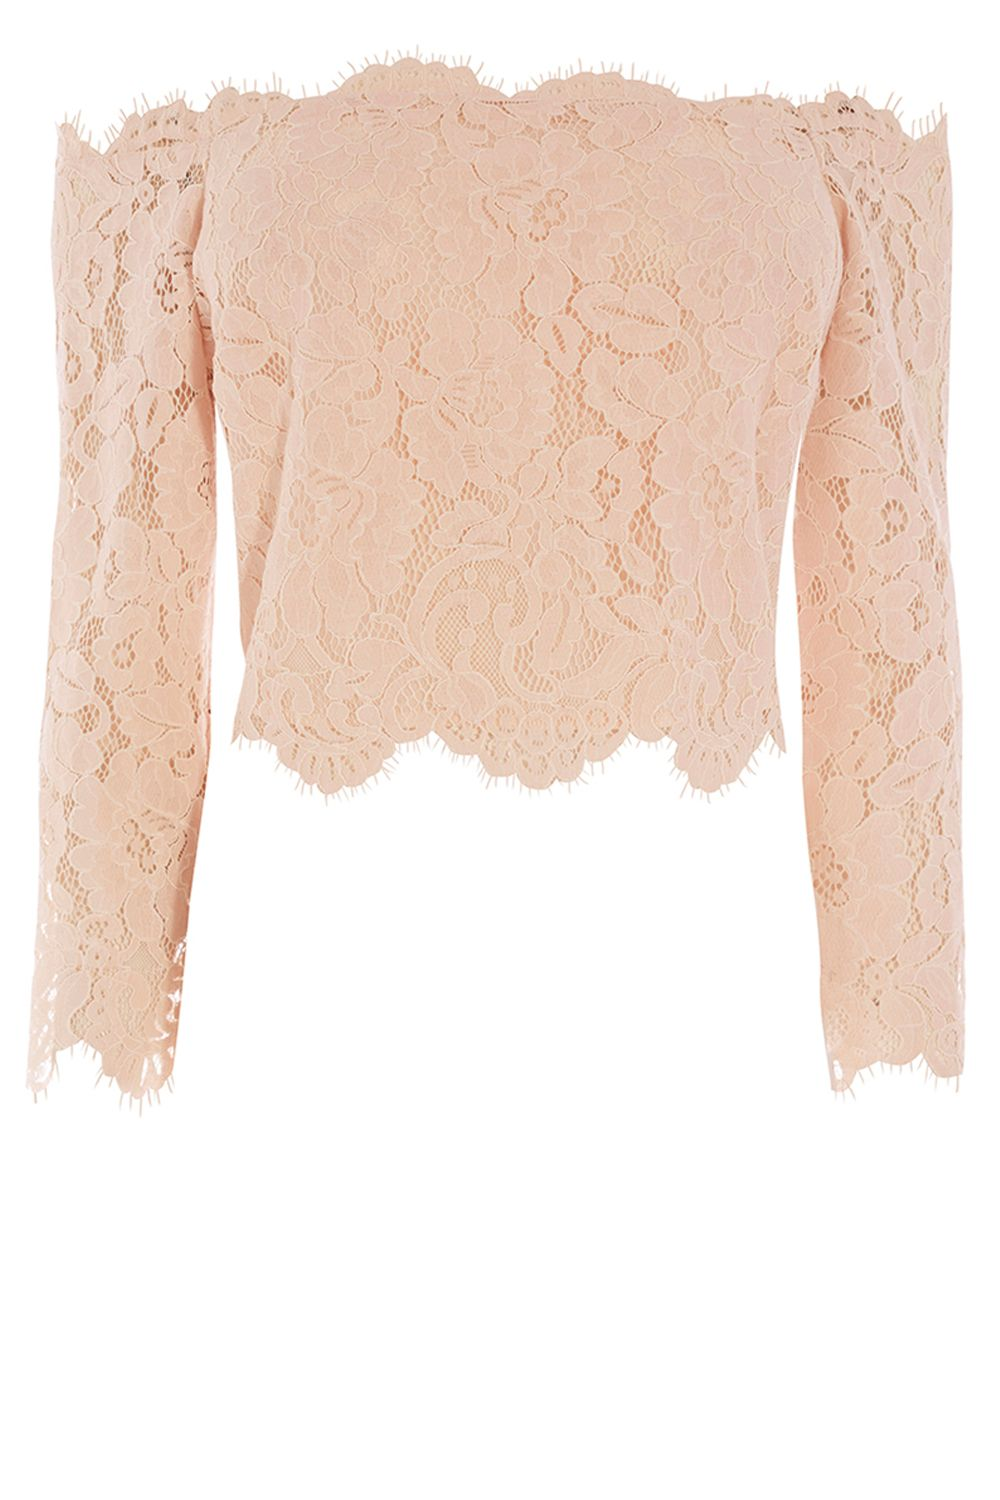 Coast Marr Lace Bridesmaids Top, Pink